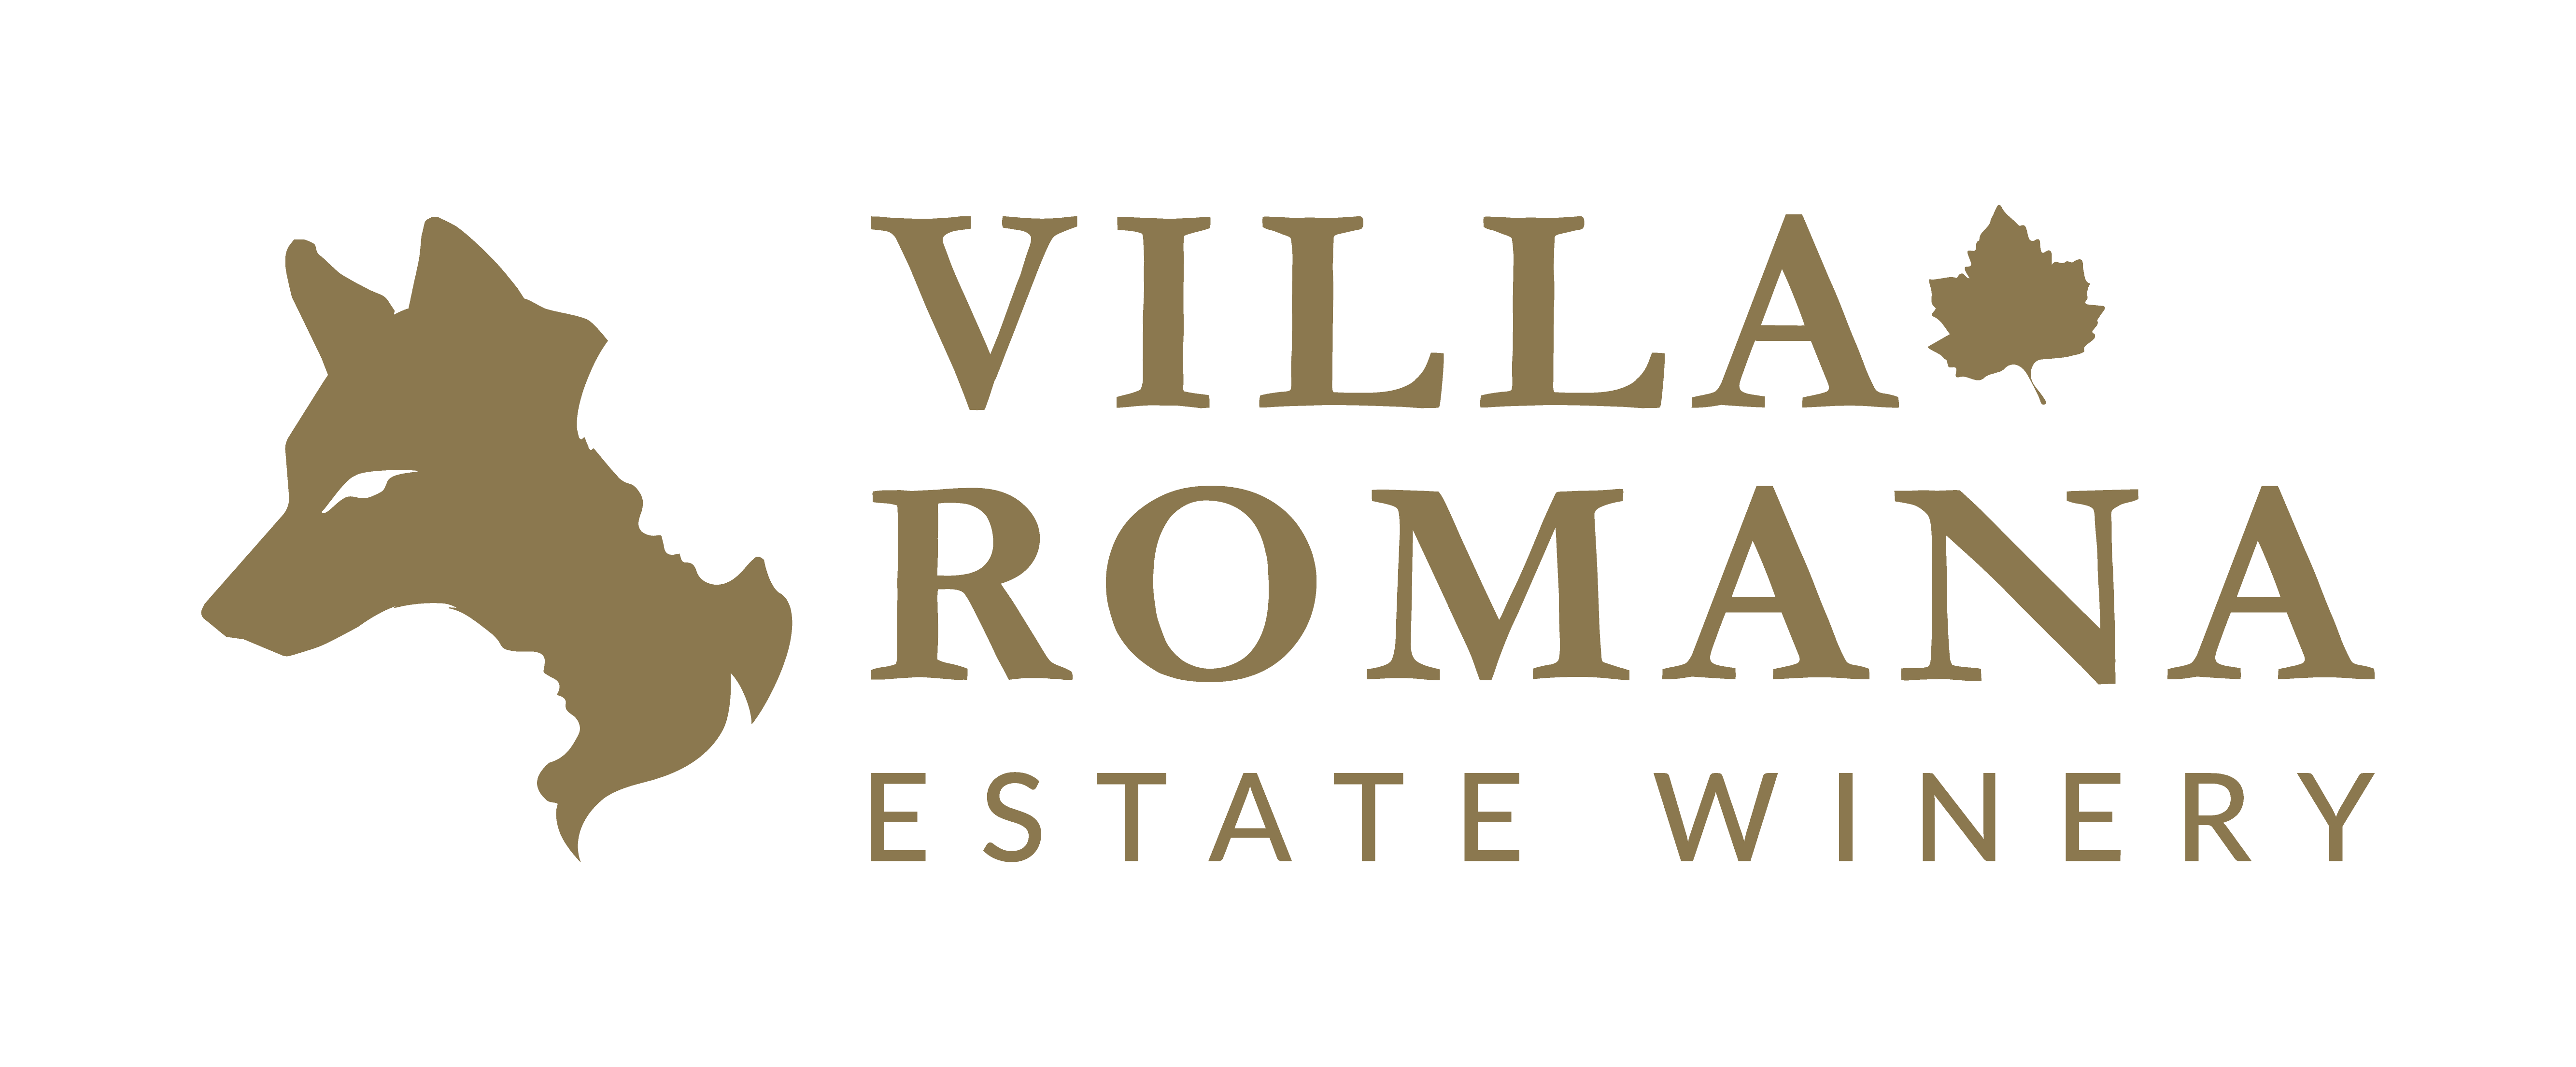 Villa Romana Estate Winery